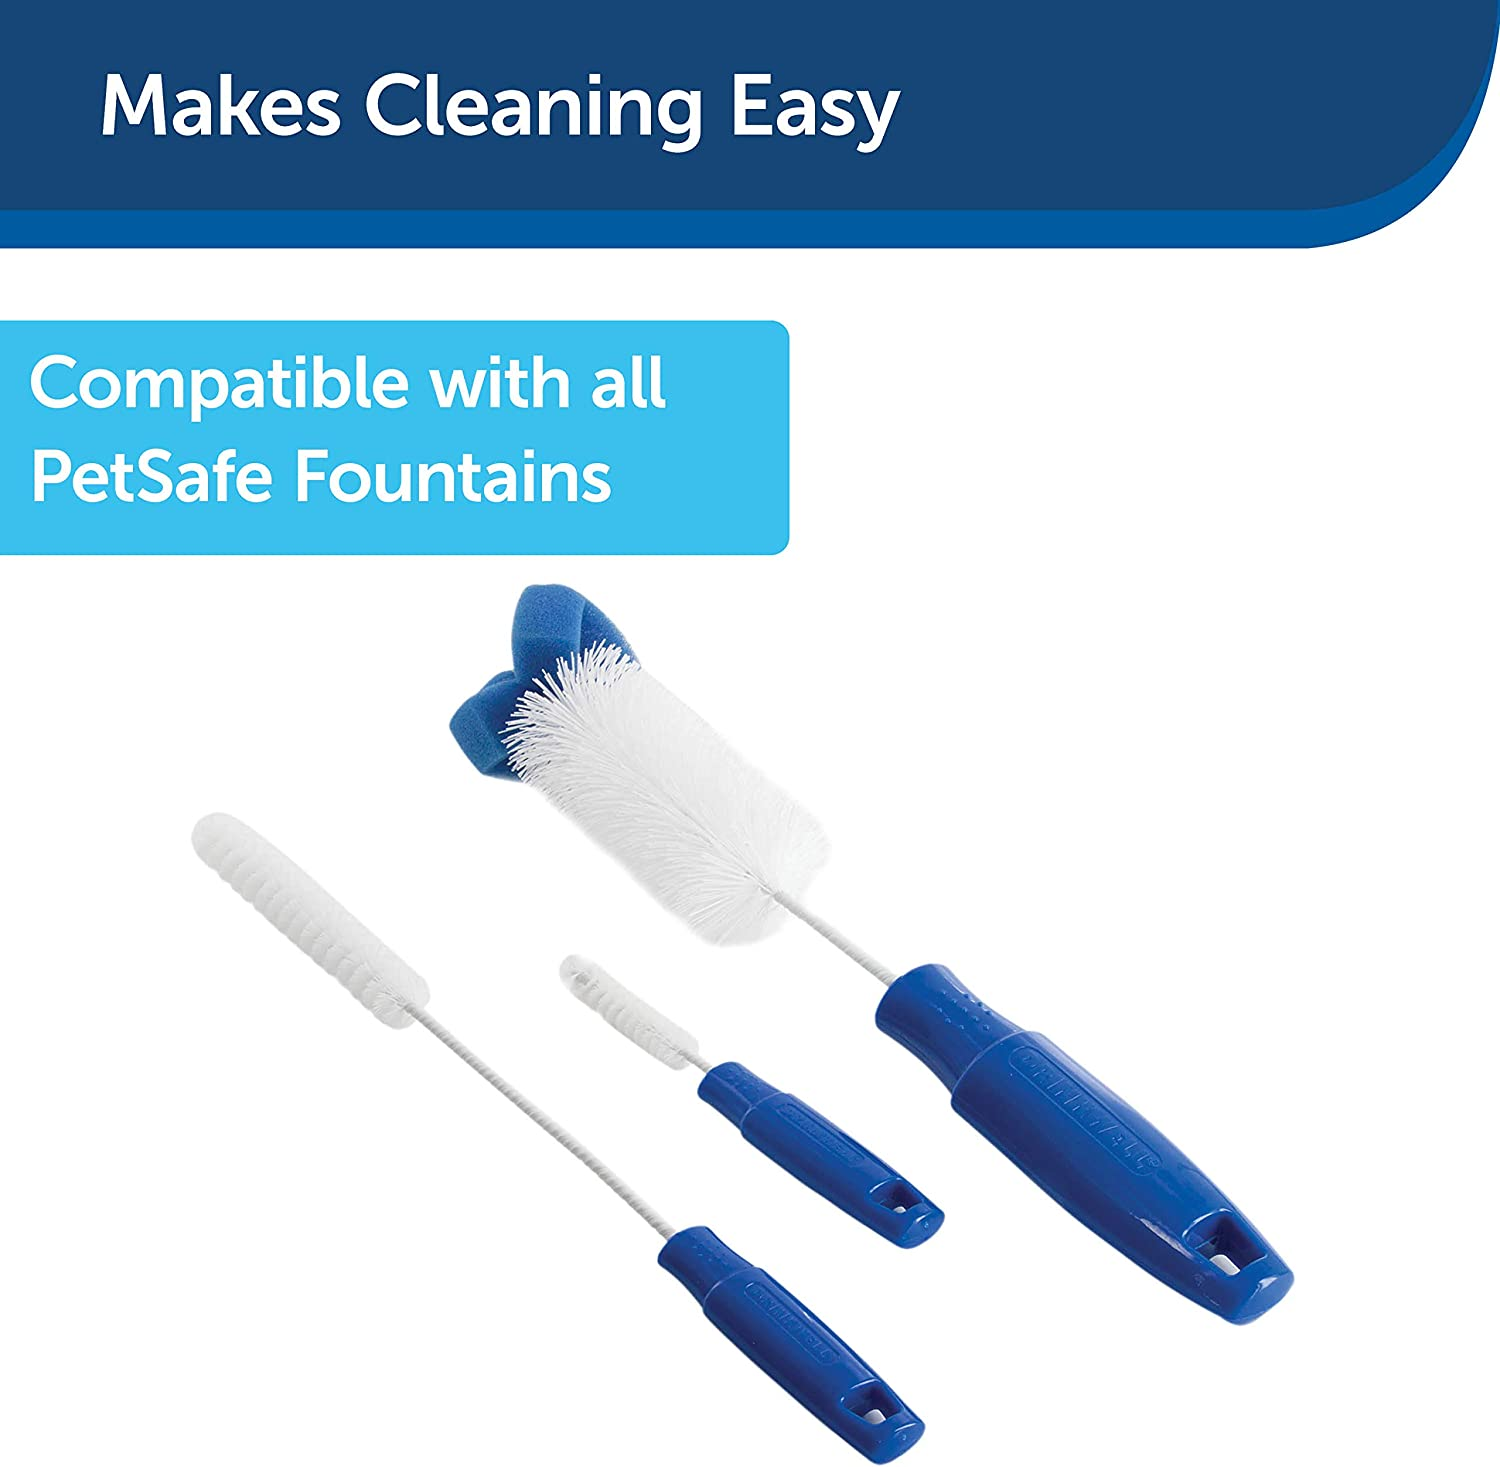 Pet Supplies : PetSafe Drinkwell Dog and Cat Water Fountain Cleaning Kit, 3 Brushes, blue, 1 3/8', 1 5/8', 2' brushes : Pet Self Waterers :